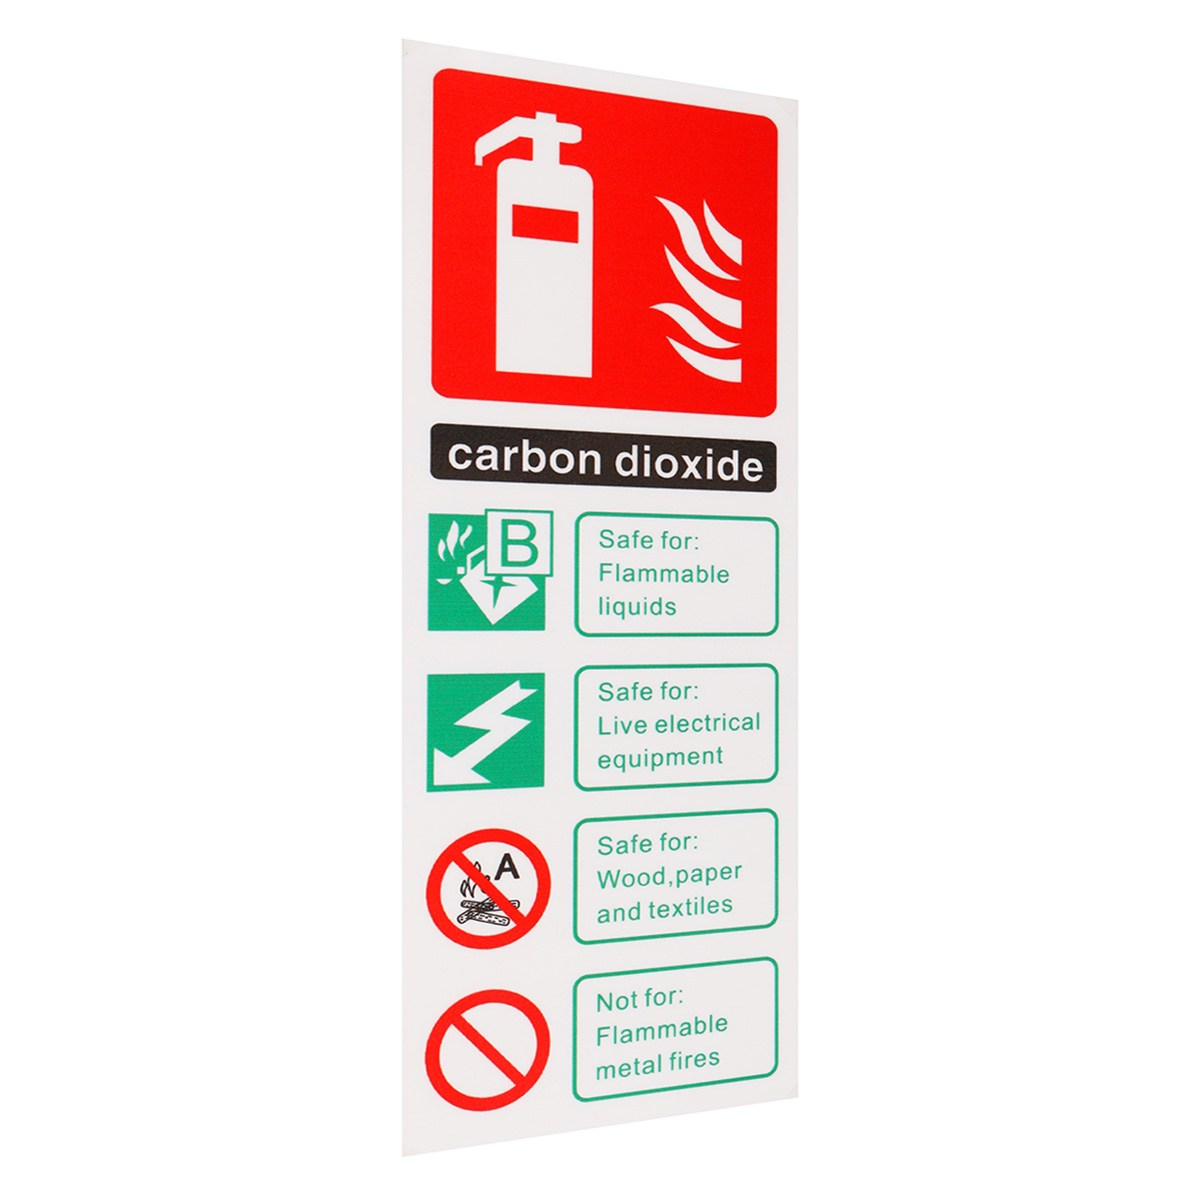 NEW Fire Extinguisher Carbon Dioxide ID Sticker Sign Sticker Decal Warning Safety Workplace SafetyNEW Fire Extinguisher Carbon Dioxide ID Sticker Sign Sticker Decal Warning Safety Workplace Safety